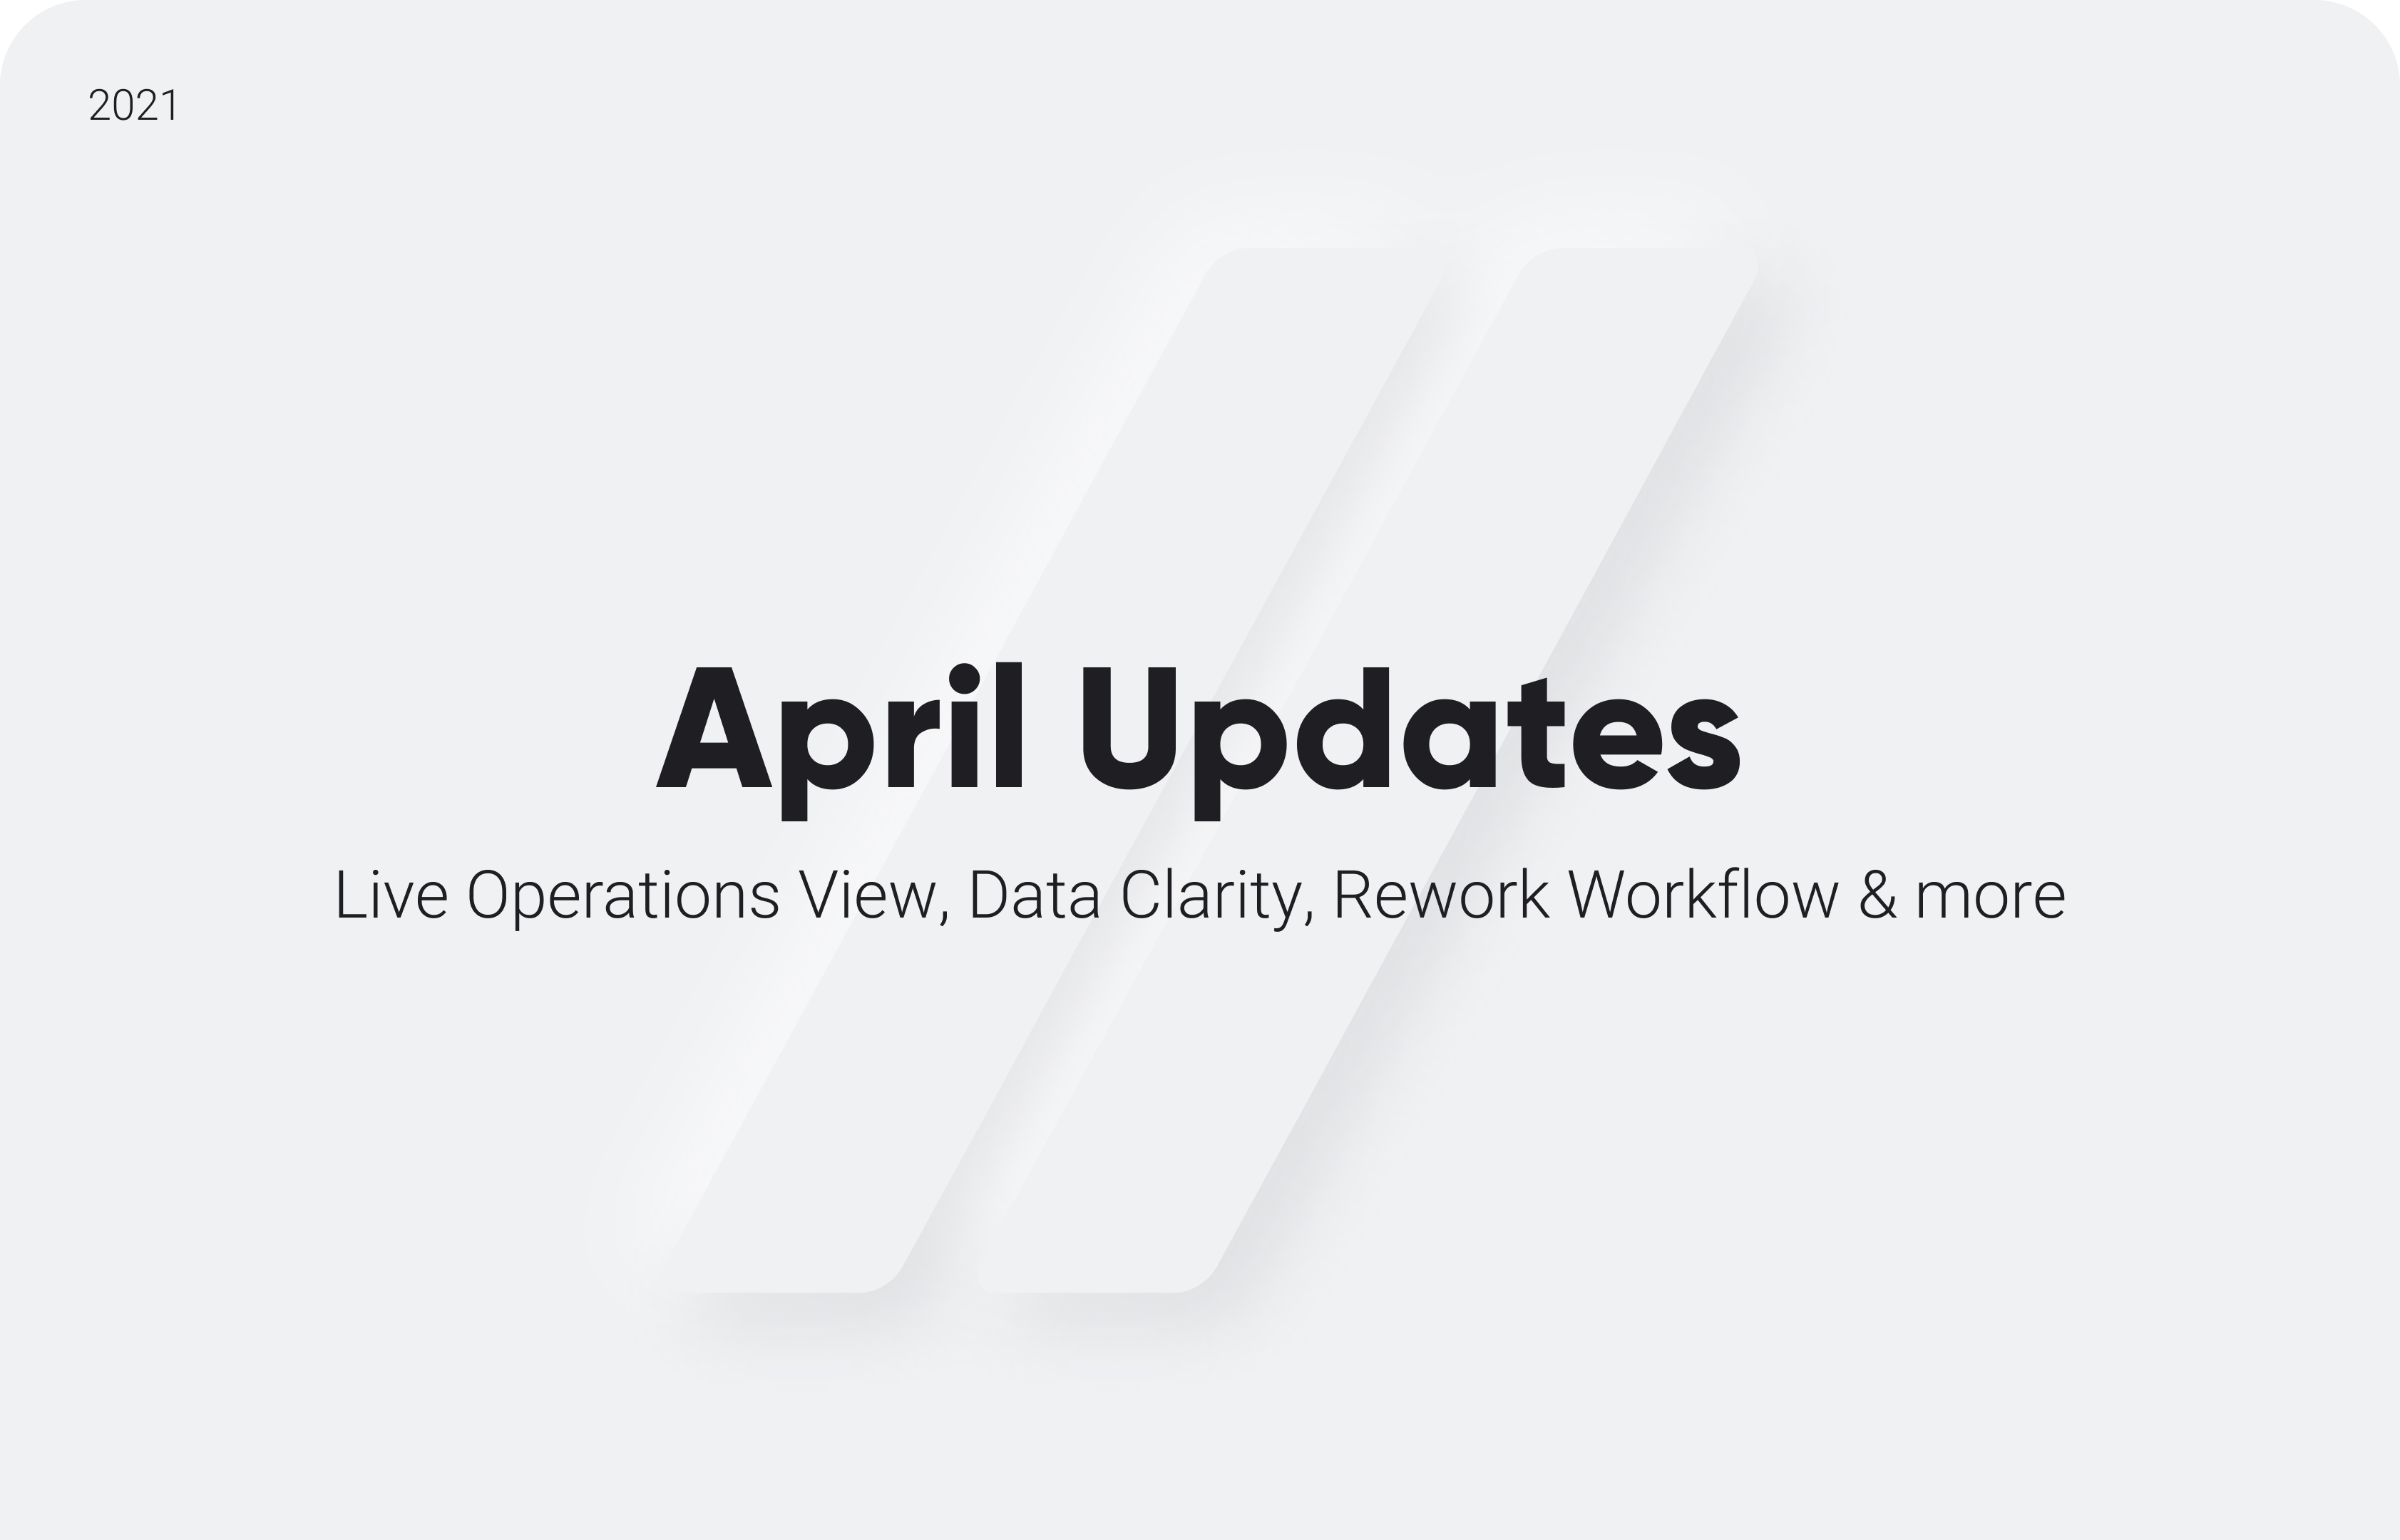 April Updates: Live Operations View, Data Clarity, Rework Workflow & more